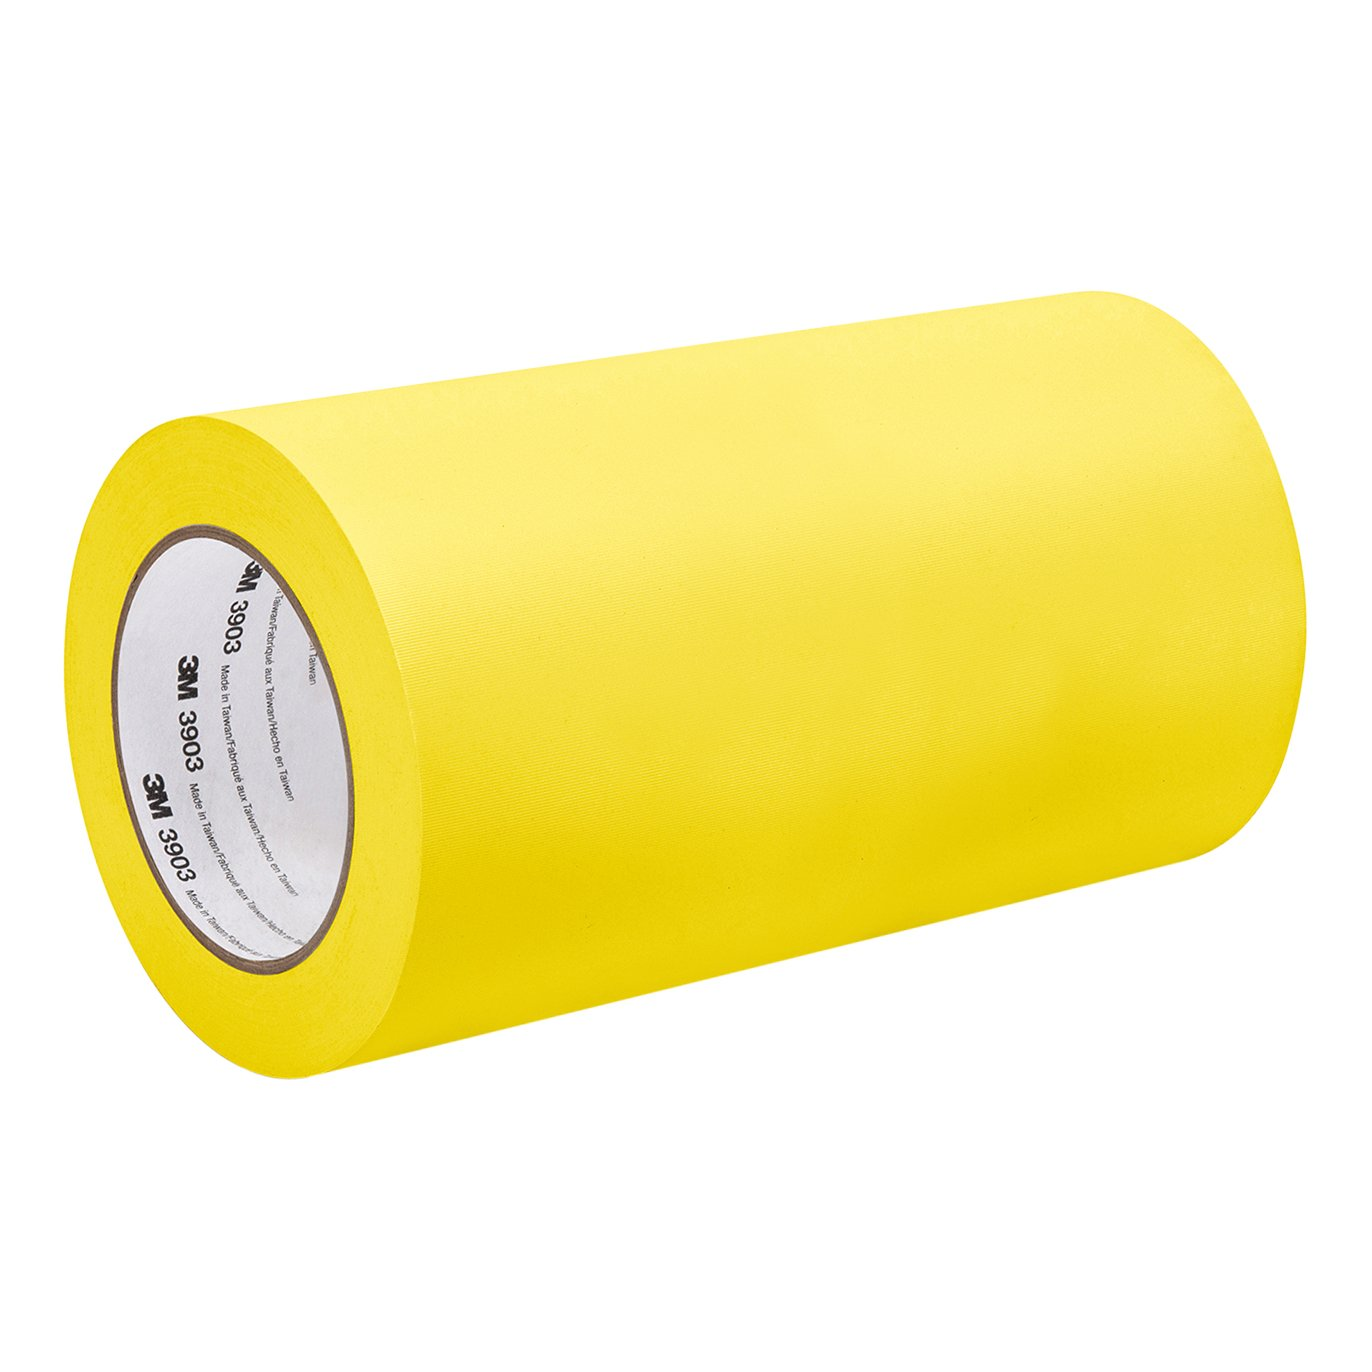 Image of 3M Yellow Vinyl/Rubber Adhesive Duct Tape 3903, 16-50-3903-YELLOW 12.6 psi Tensile Strength, 50 yd. Length, 16' Width Home Improvements